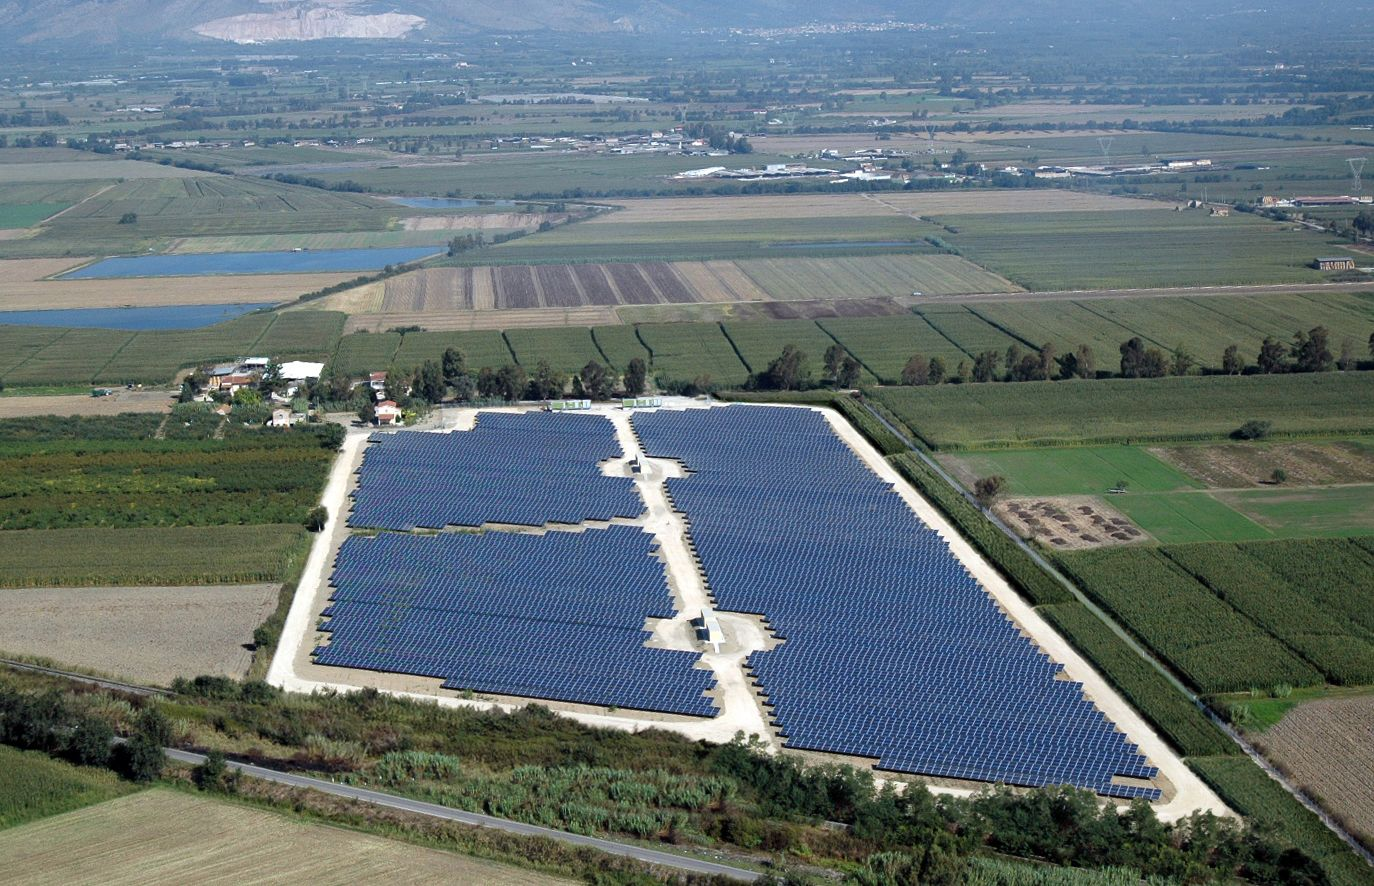 solarprojects Solar projects, Solar